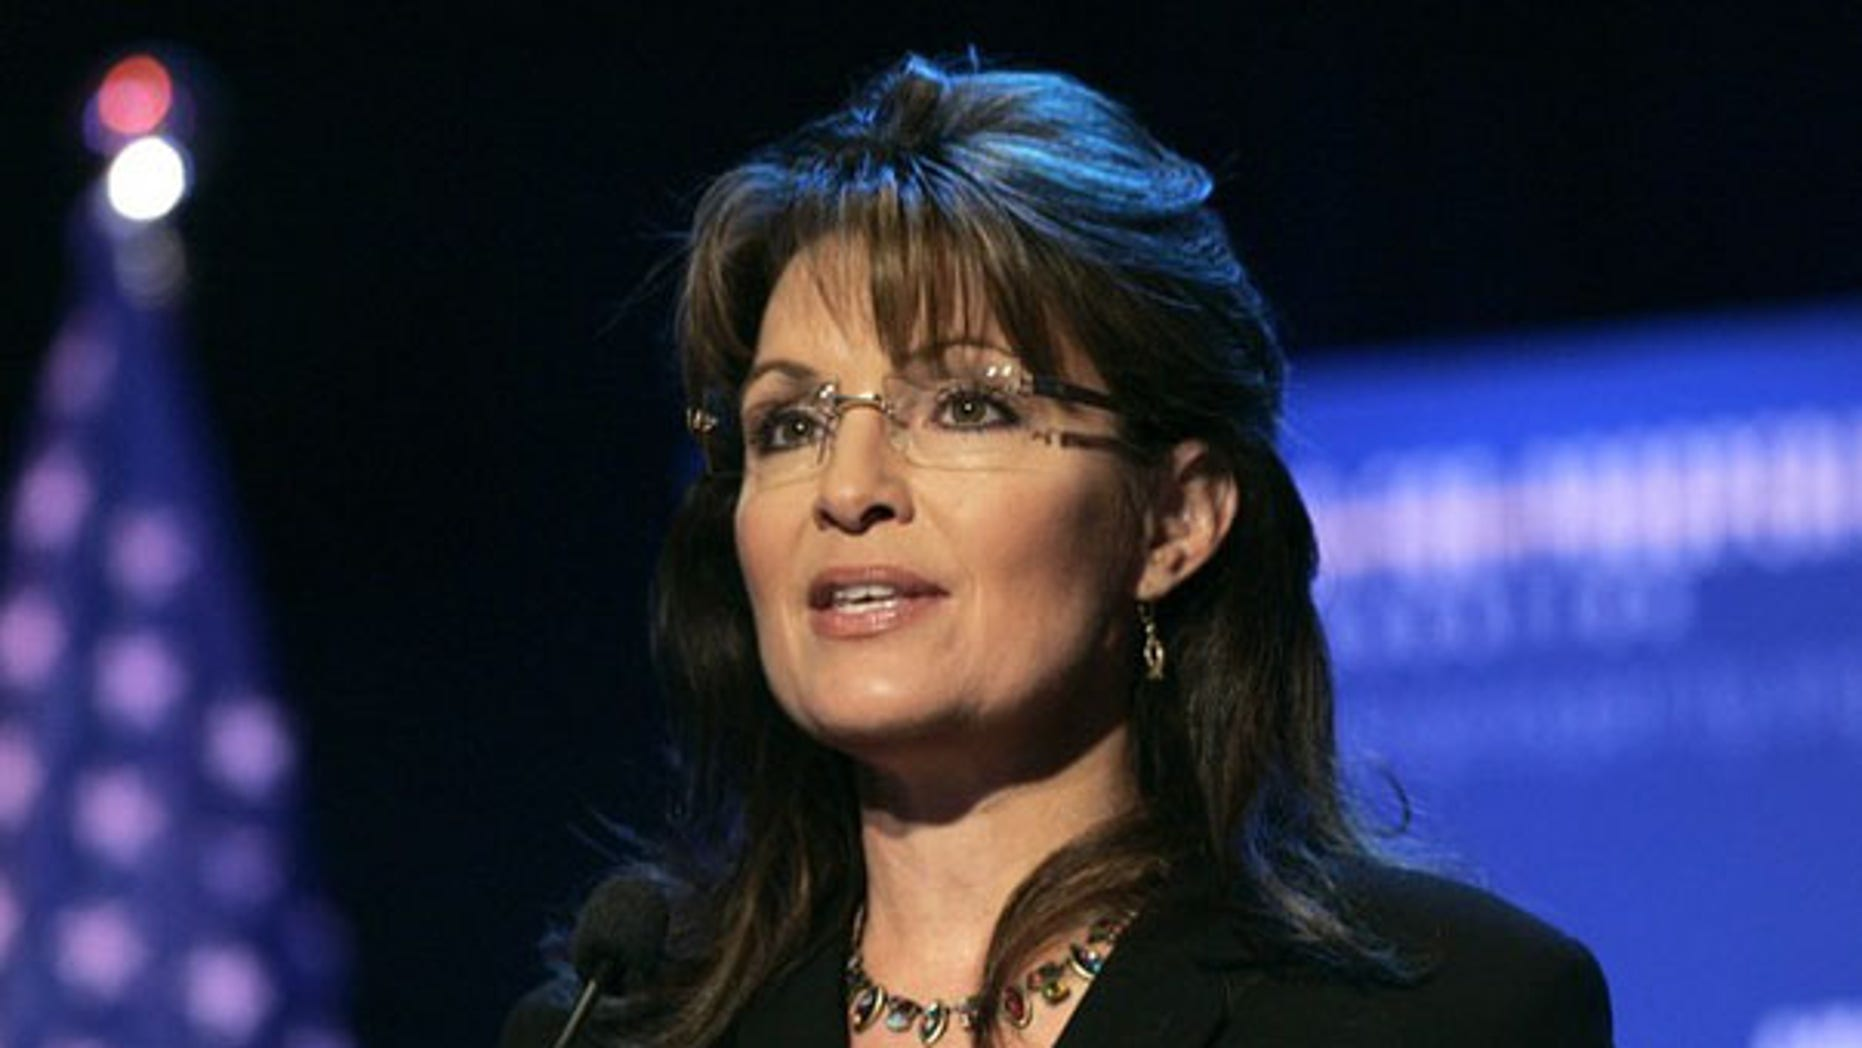 Sarah Palin speaks during the 'Americans For Prosperity Foundation Summit' in Clarkston, Mich., May 1. (Reuters Photo)